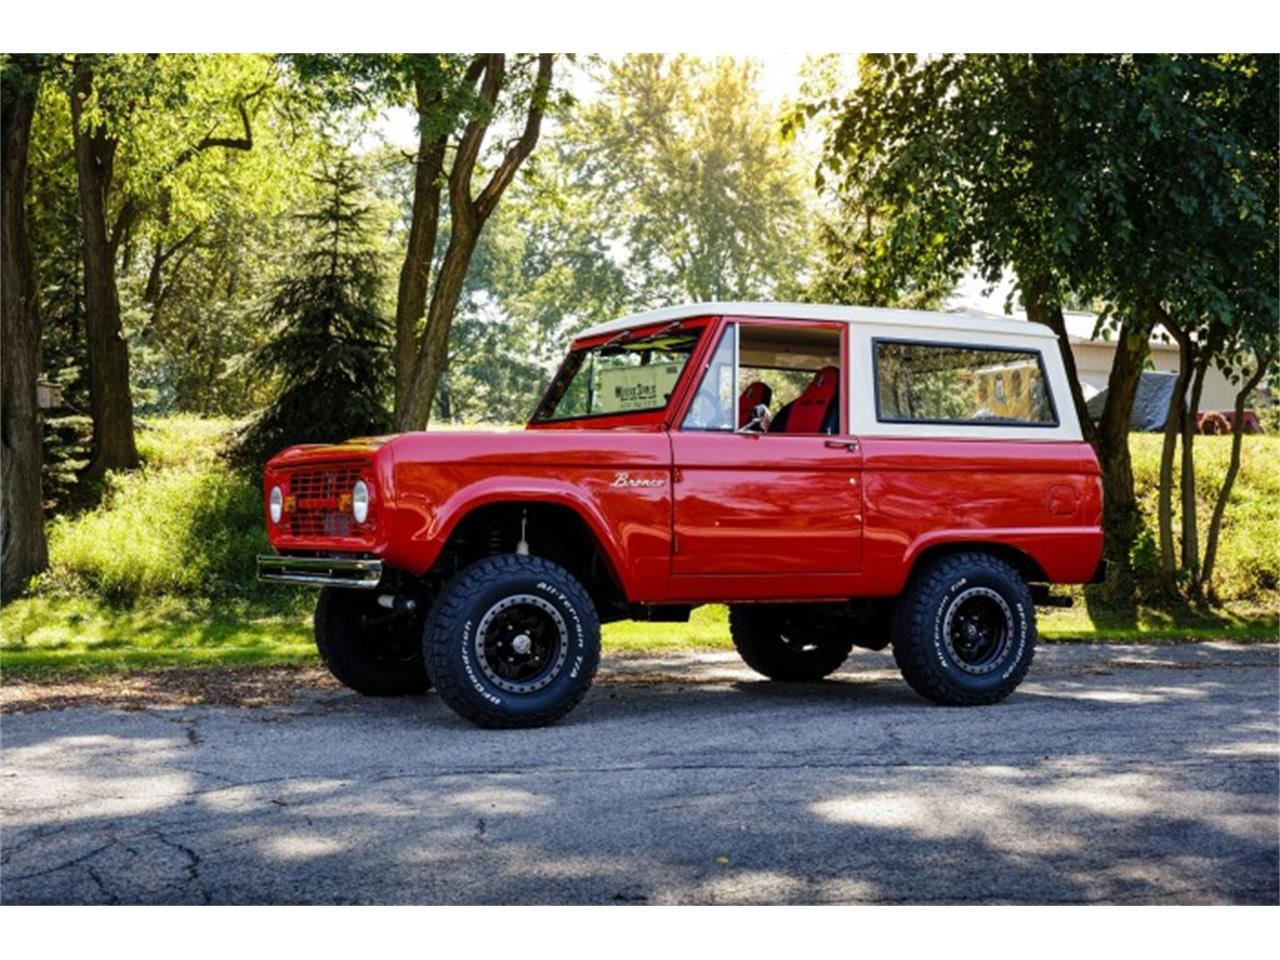 Large picture of 77 bronco mlie